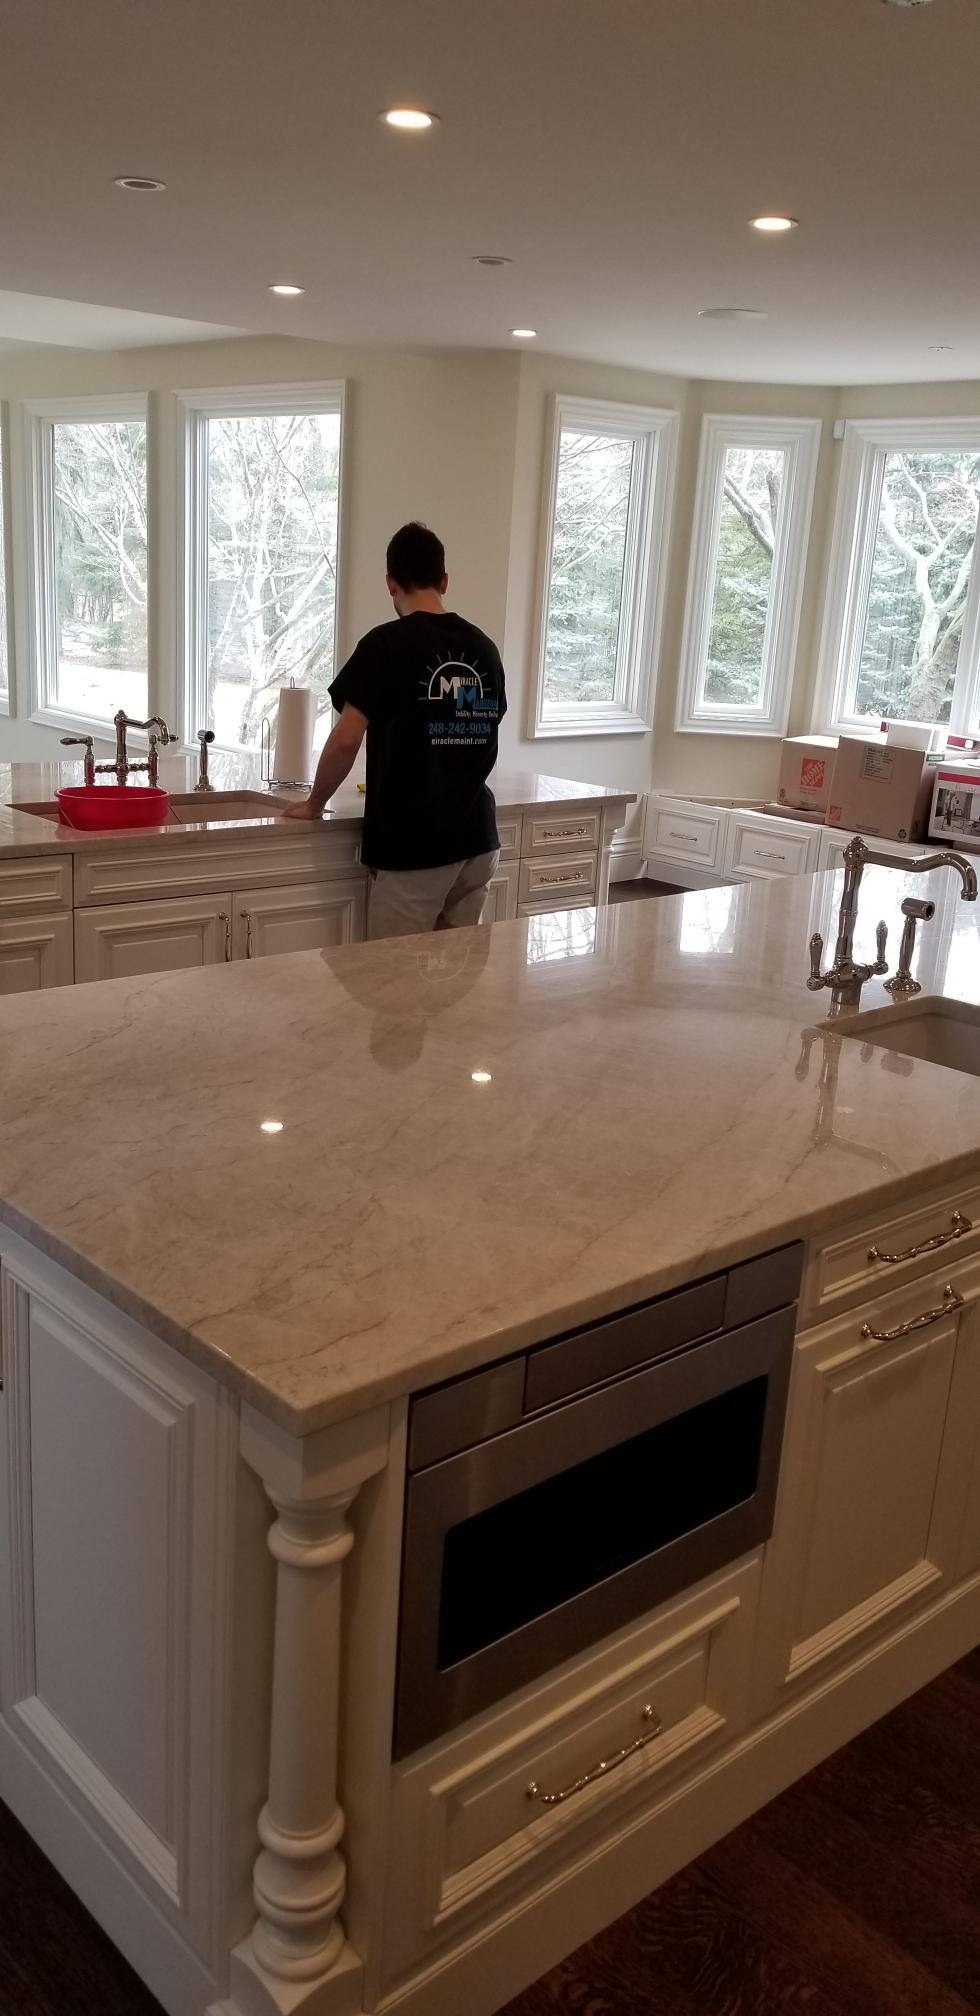 Residential Cleaning, Birmingham MI